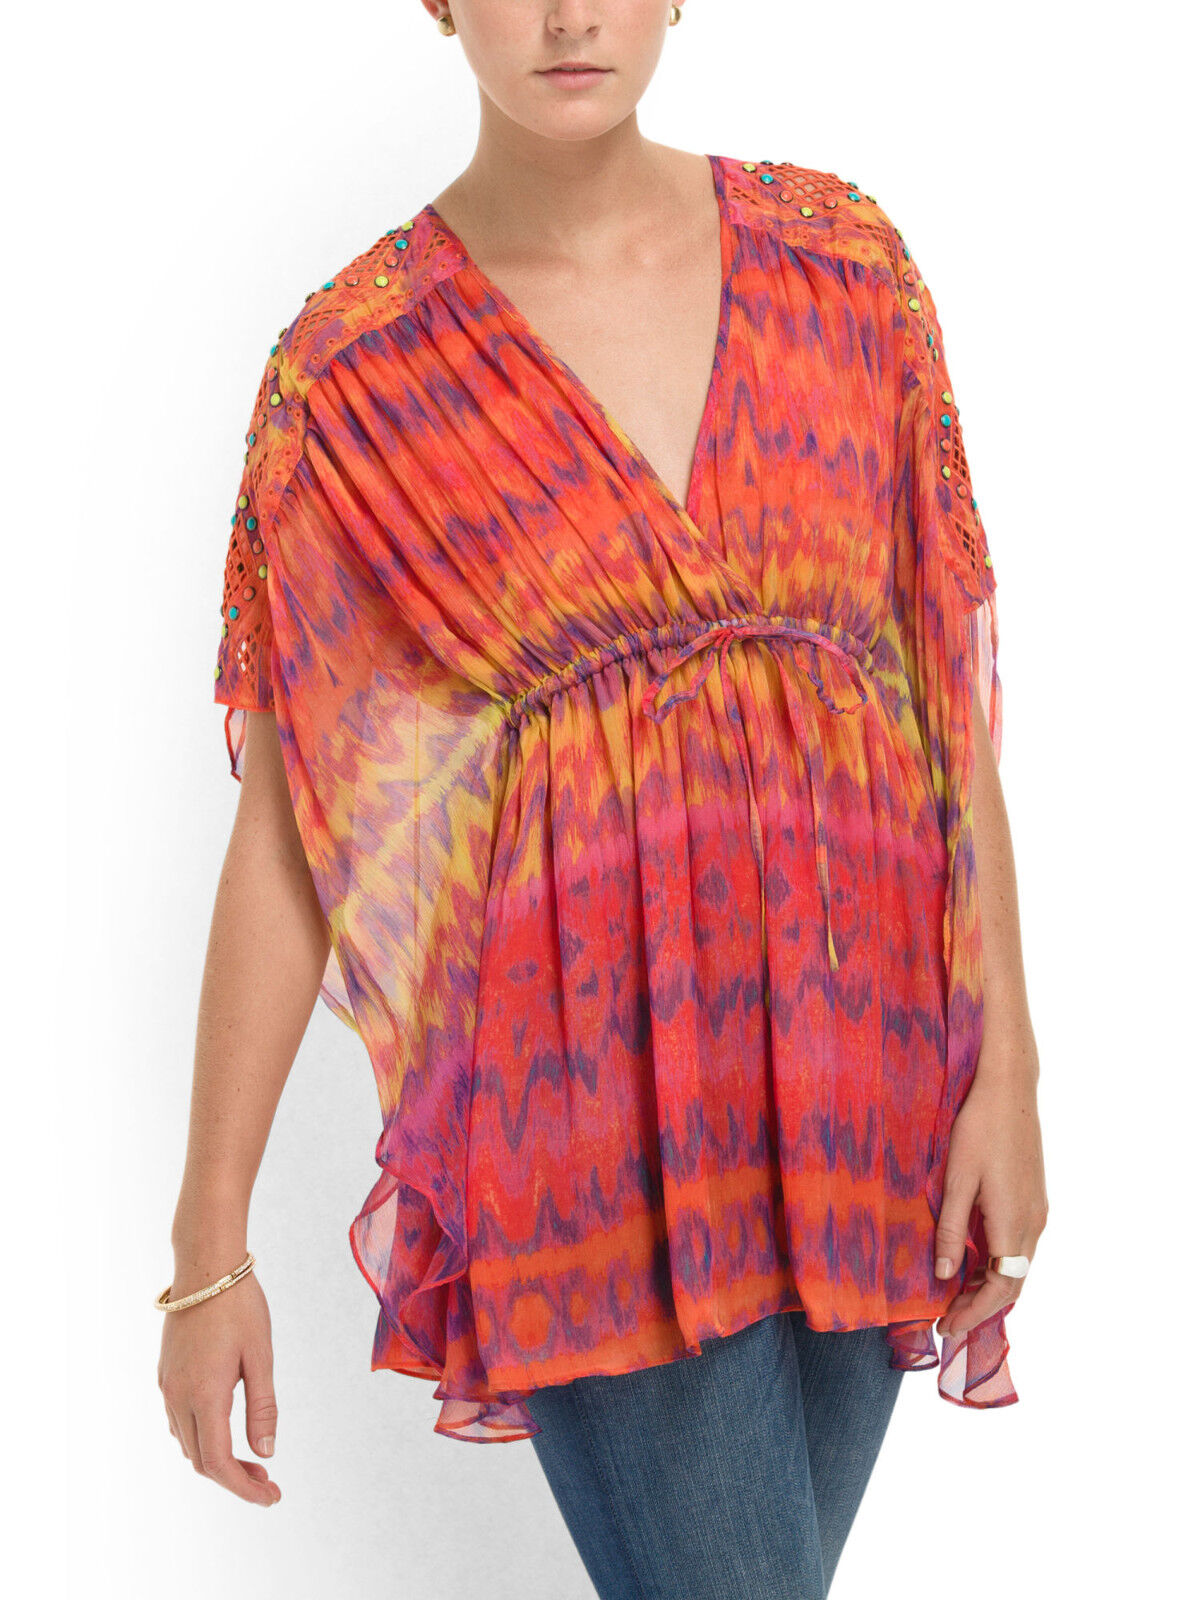 Catherine Malandrino Blouse Silk Kaftan Surfer Print Orange Multi-NWT-RP